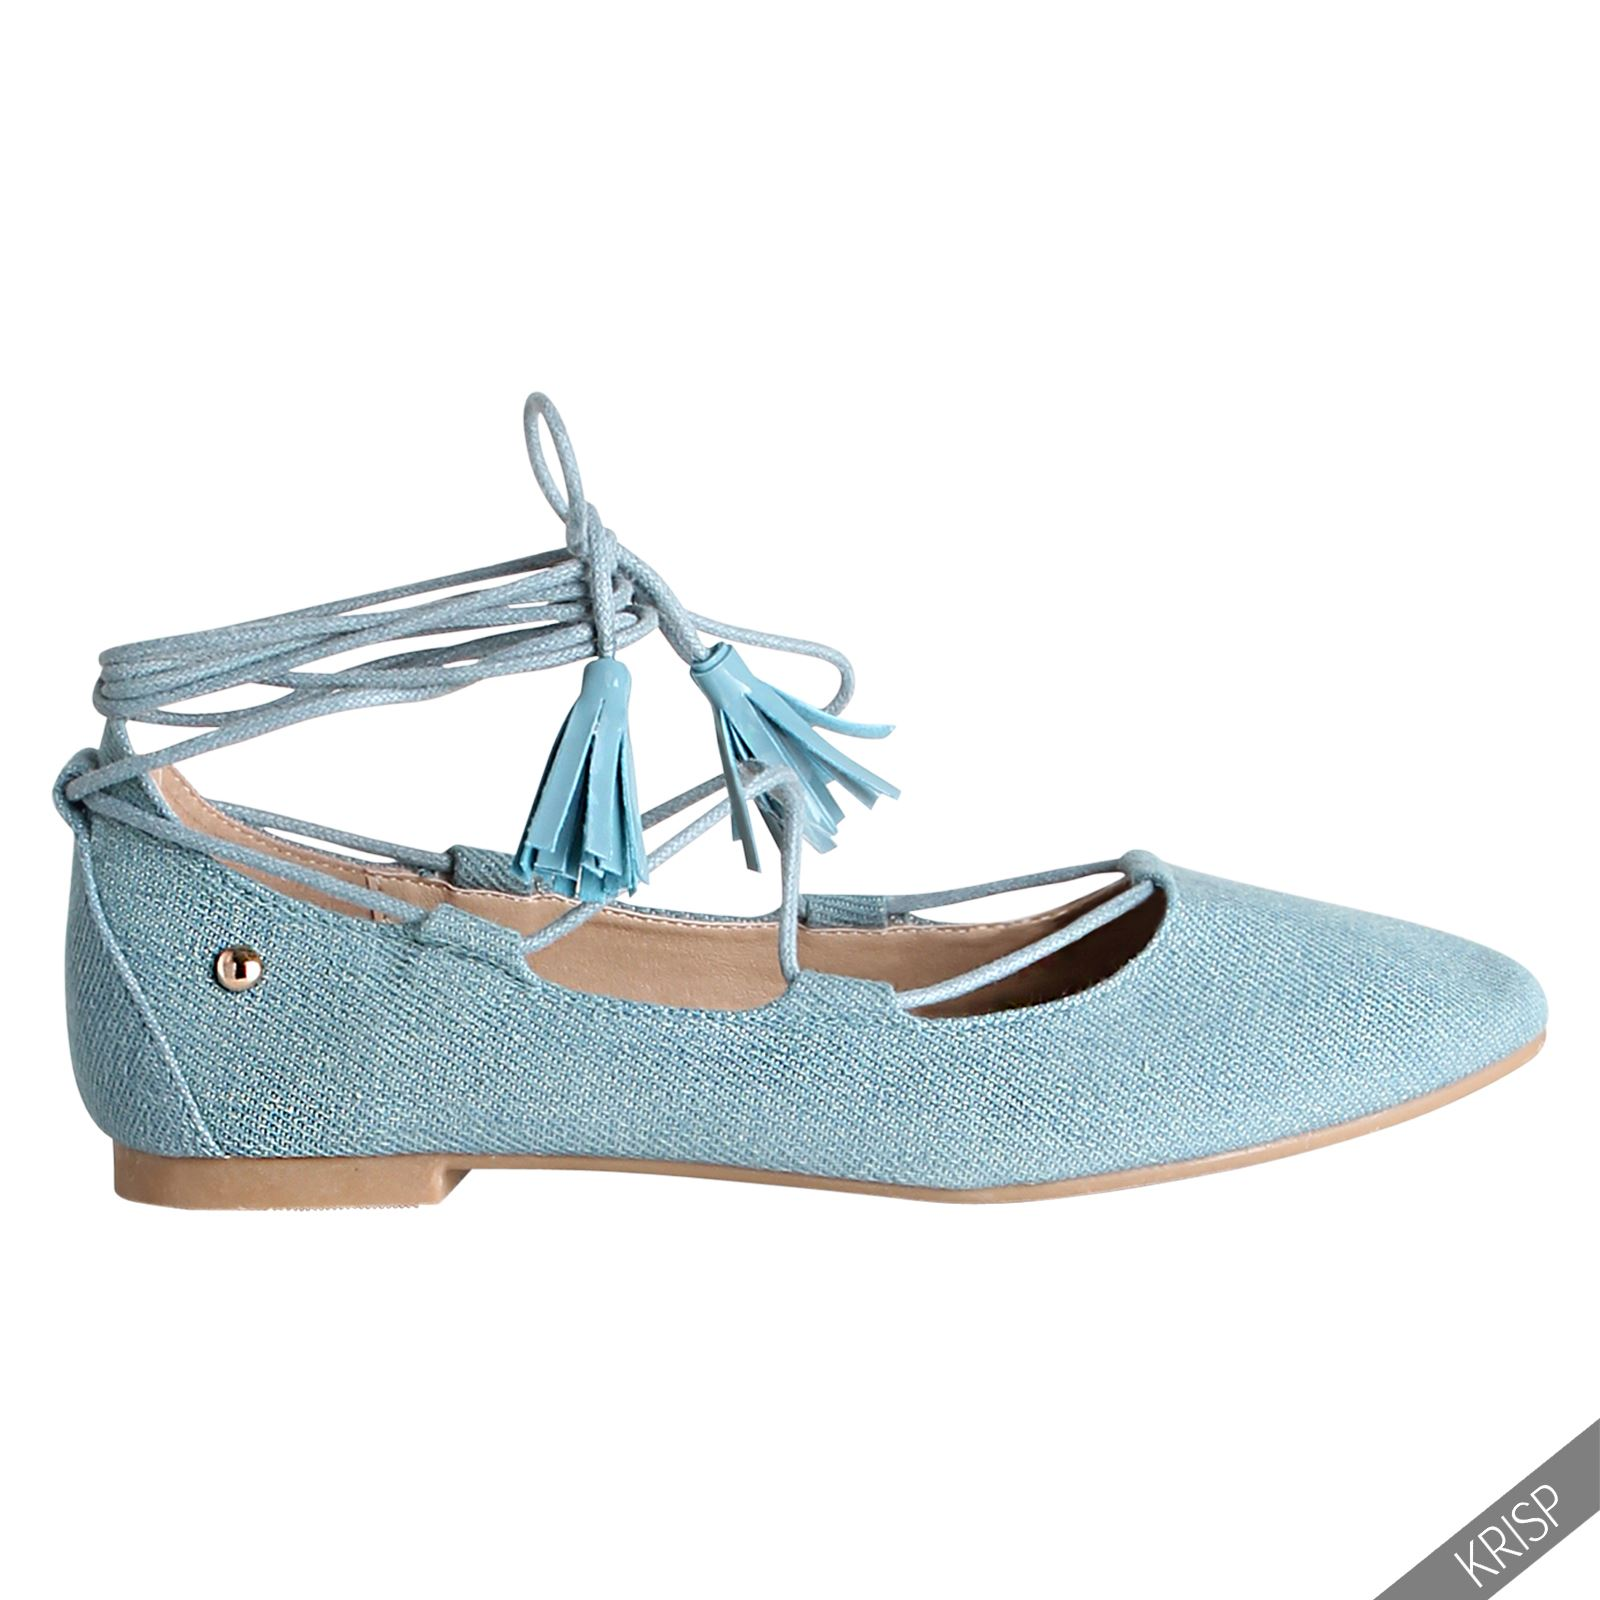 Shop women's flats at 0549sahibi.tk Discover a stylish selection of the latest brand name and designer fashions all at a great value. Comfort Lace Up Oxfords. $ compare at $48 see similar styles Made In Italy Woven Leather Ballet Flats. $ compare at $ see similar styles.